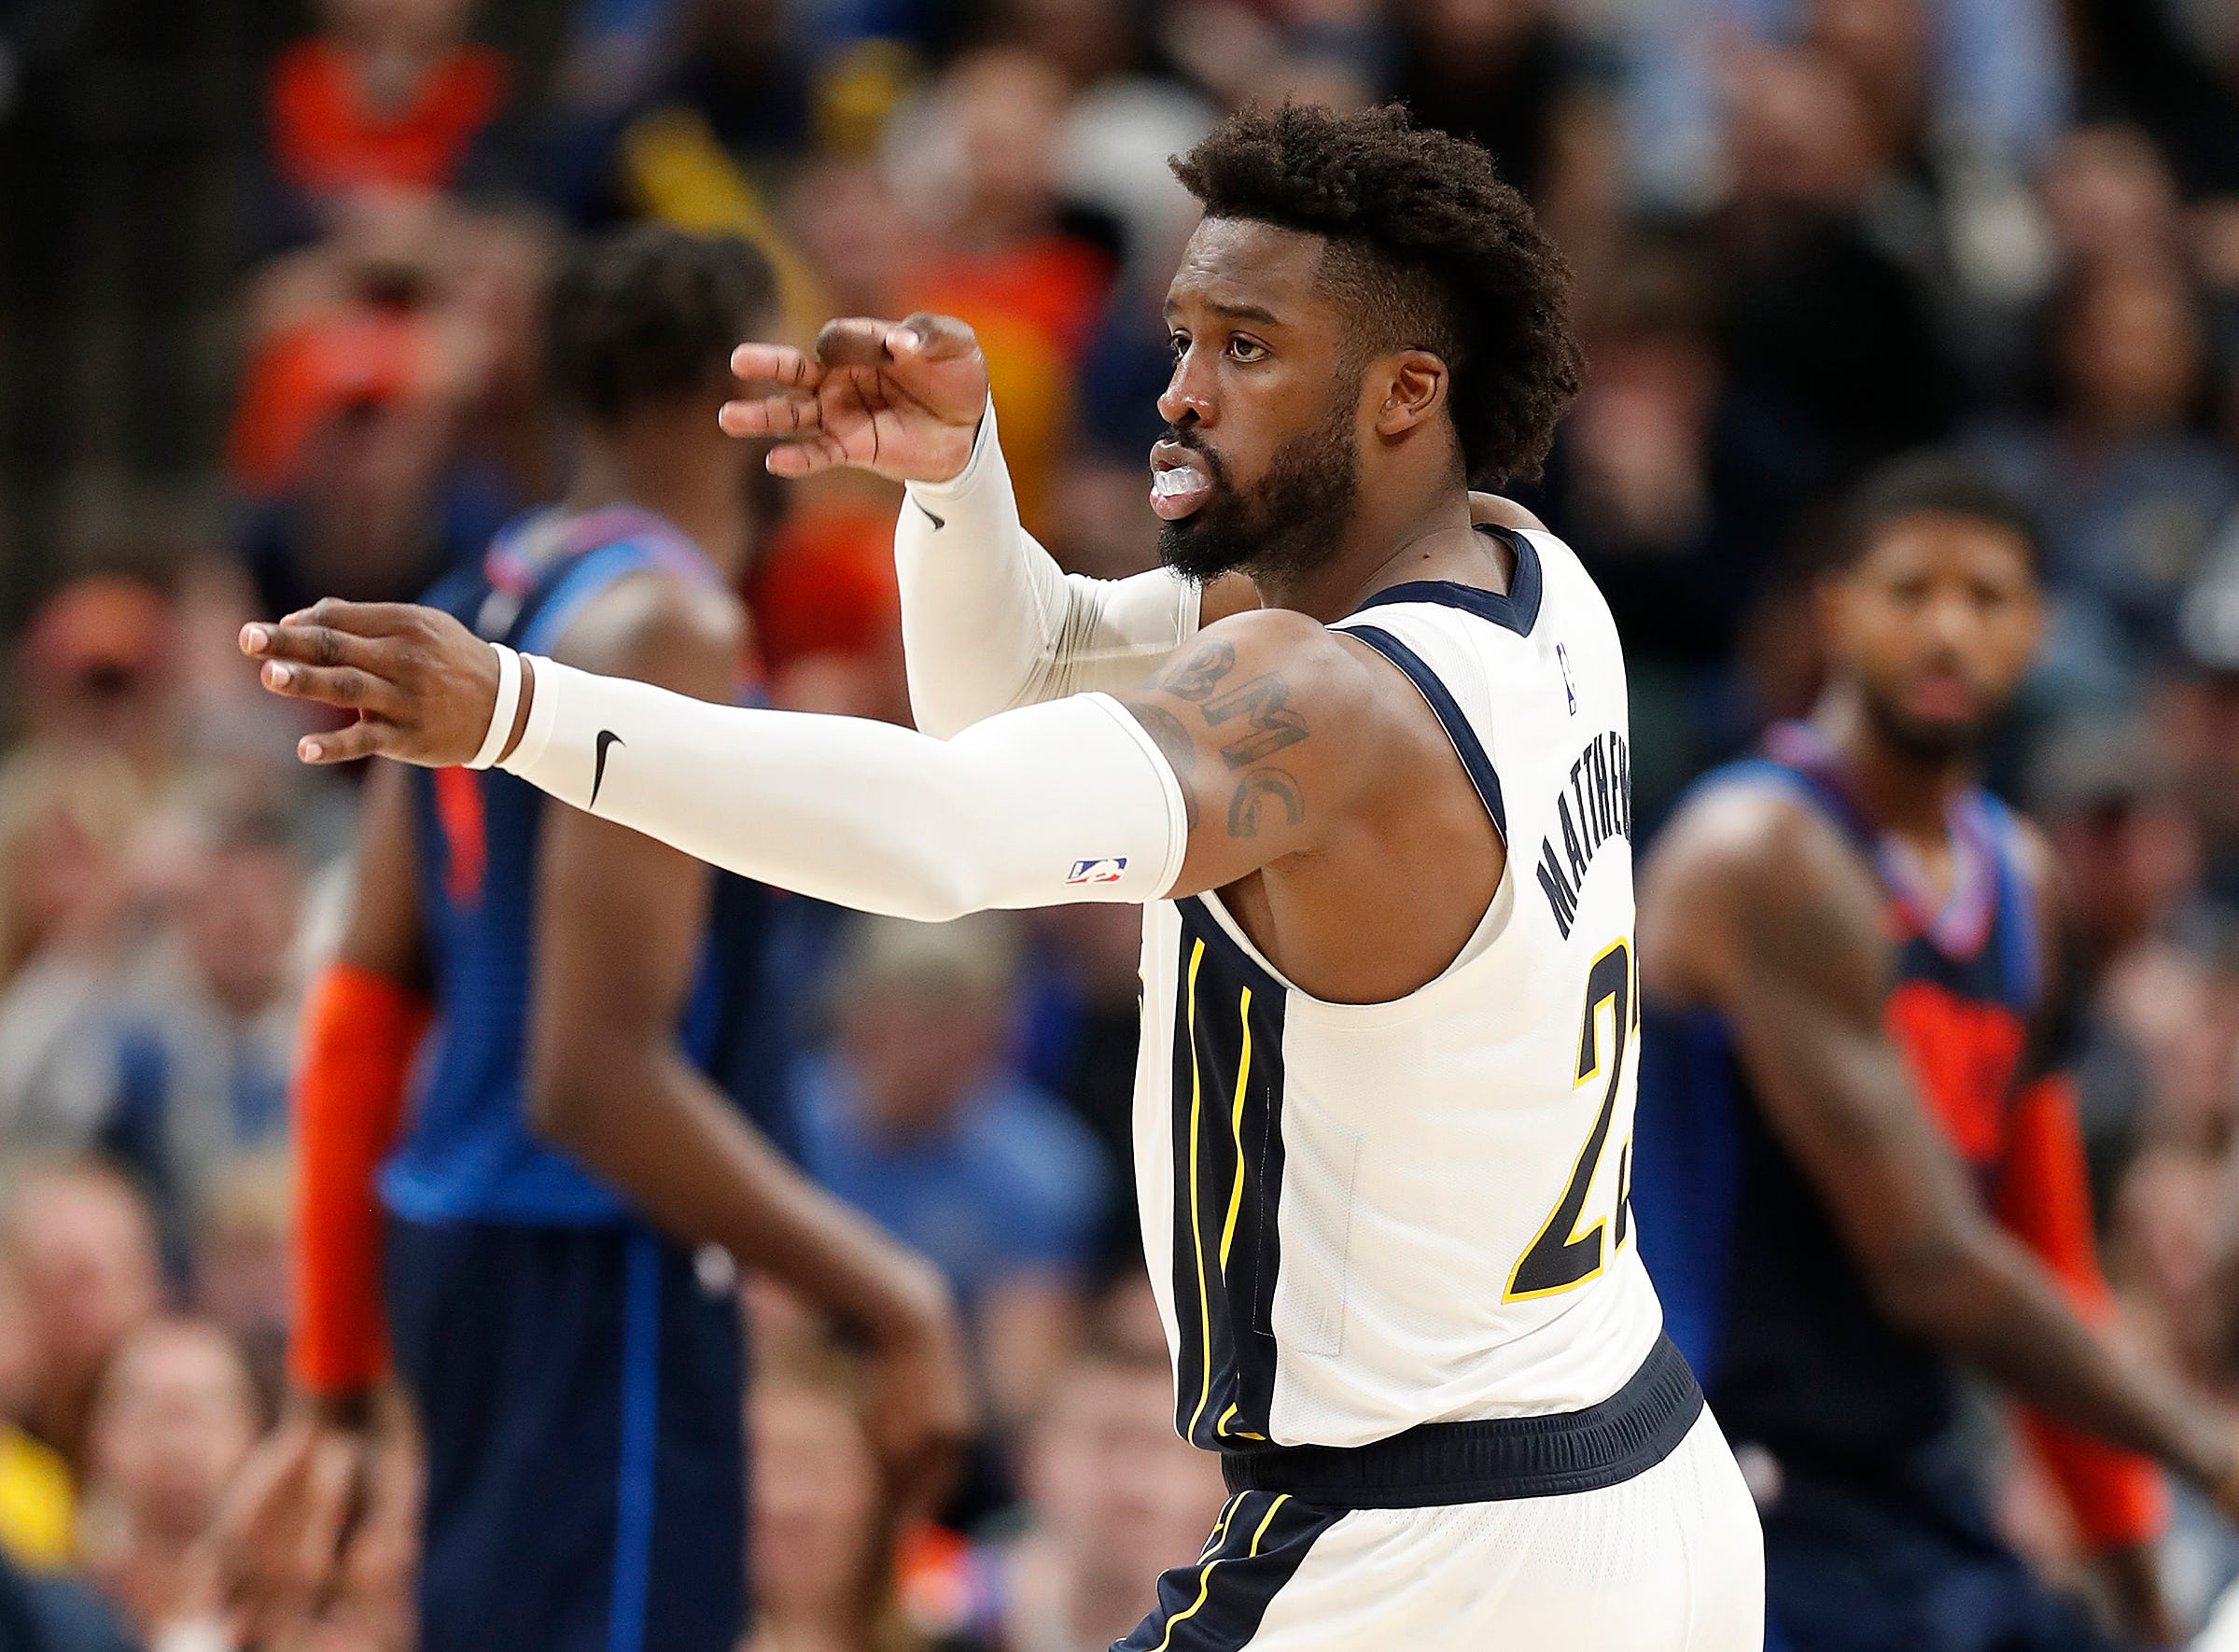 Indiana Pacers guard Wesley Matthews (23) celebrates hitting a three-point shot in the second half of their game at Bankers Life Fieldhouse on Thursday, Mar. 14, 2019. The Pacers defeated the Thunder 108-106.